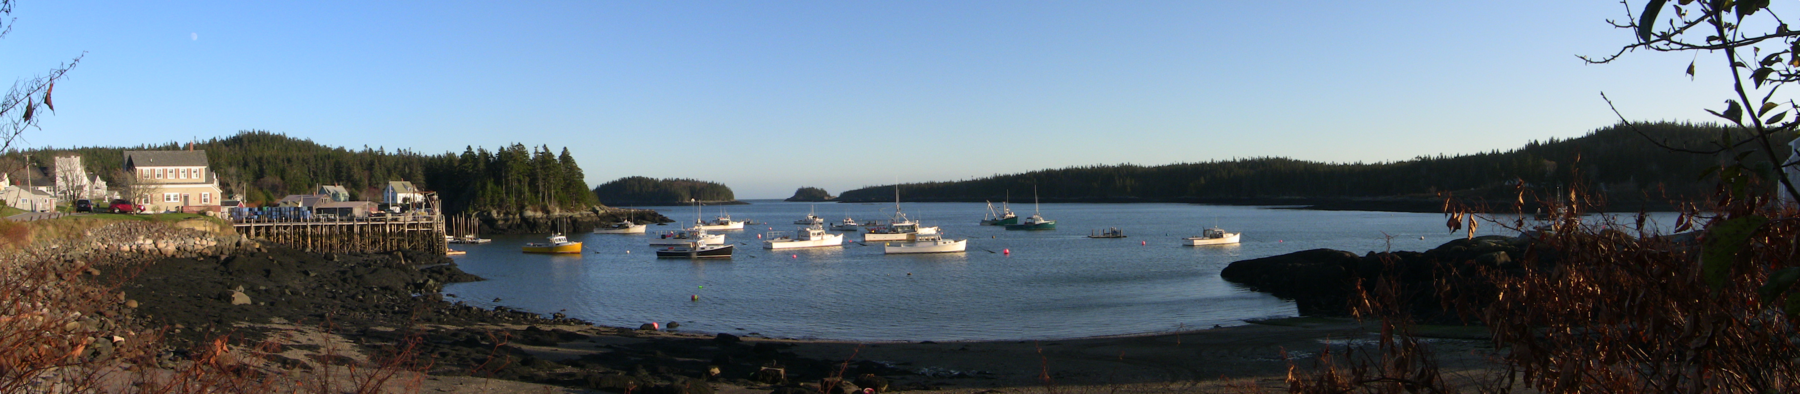 Panorama of Cutler Harbor in November